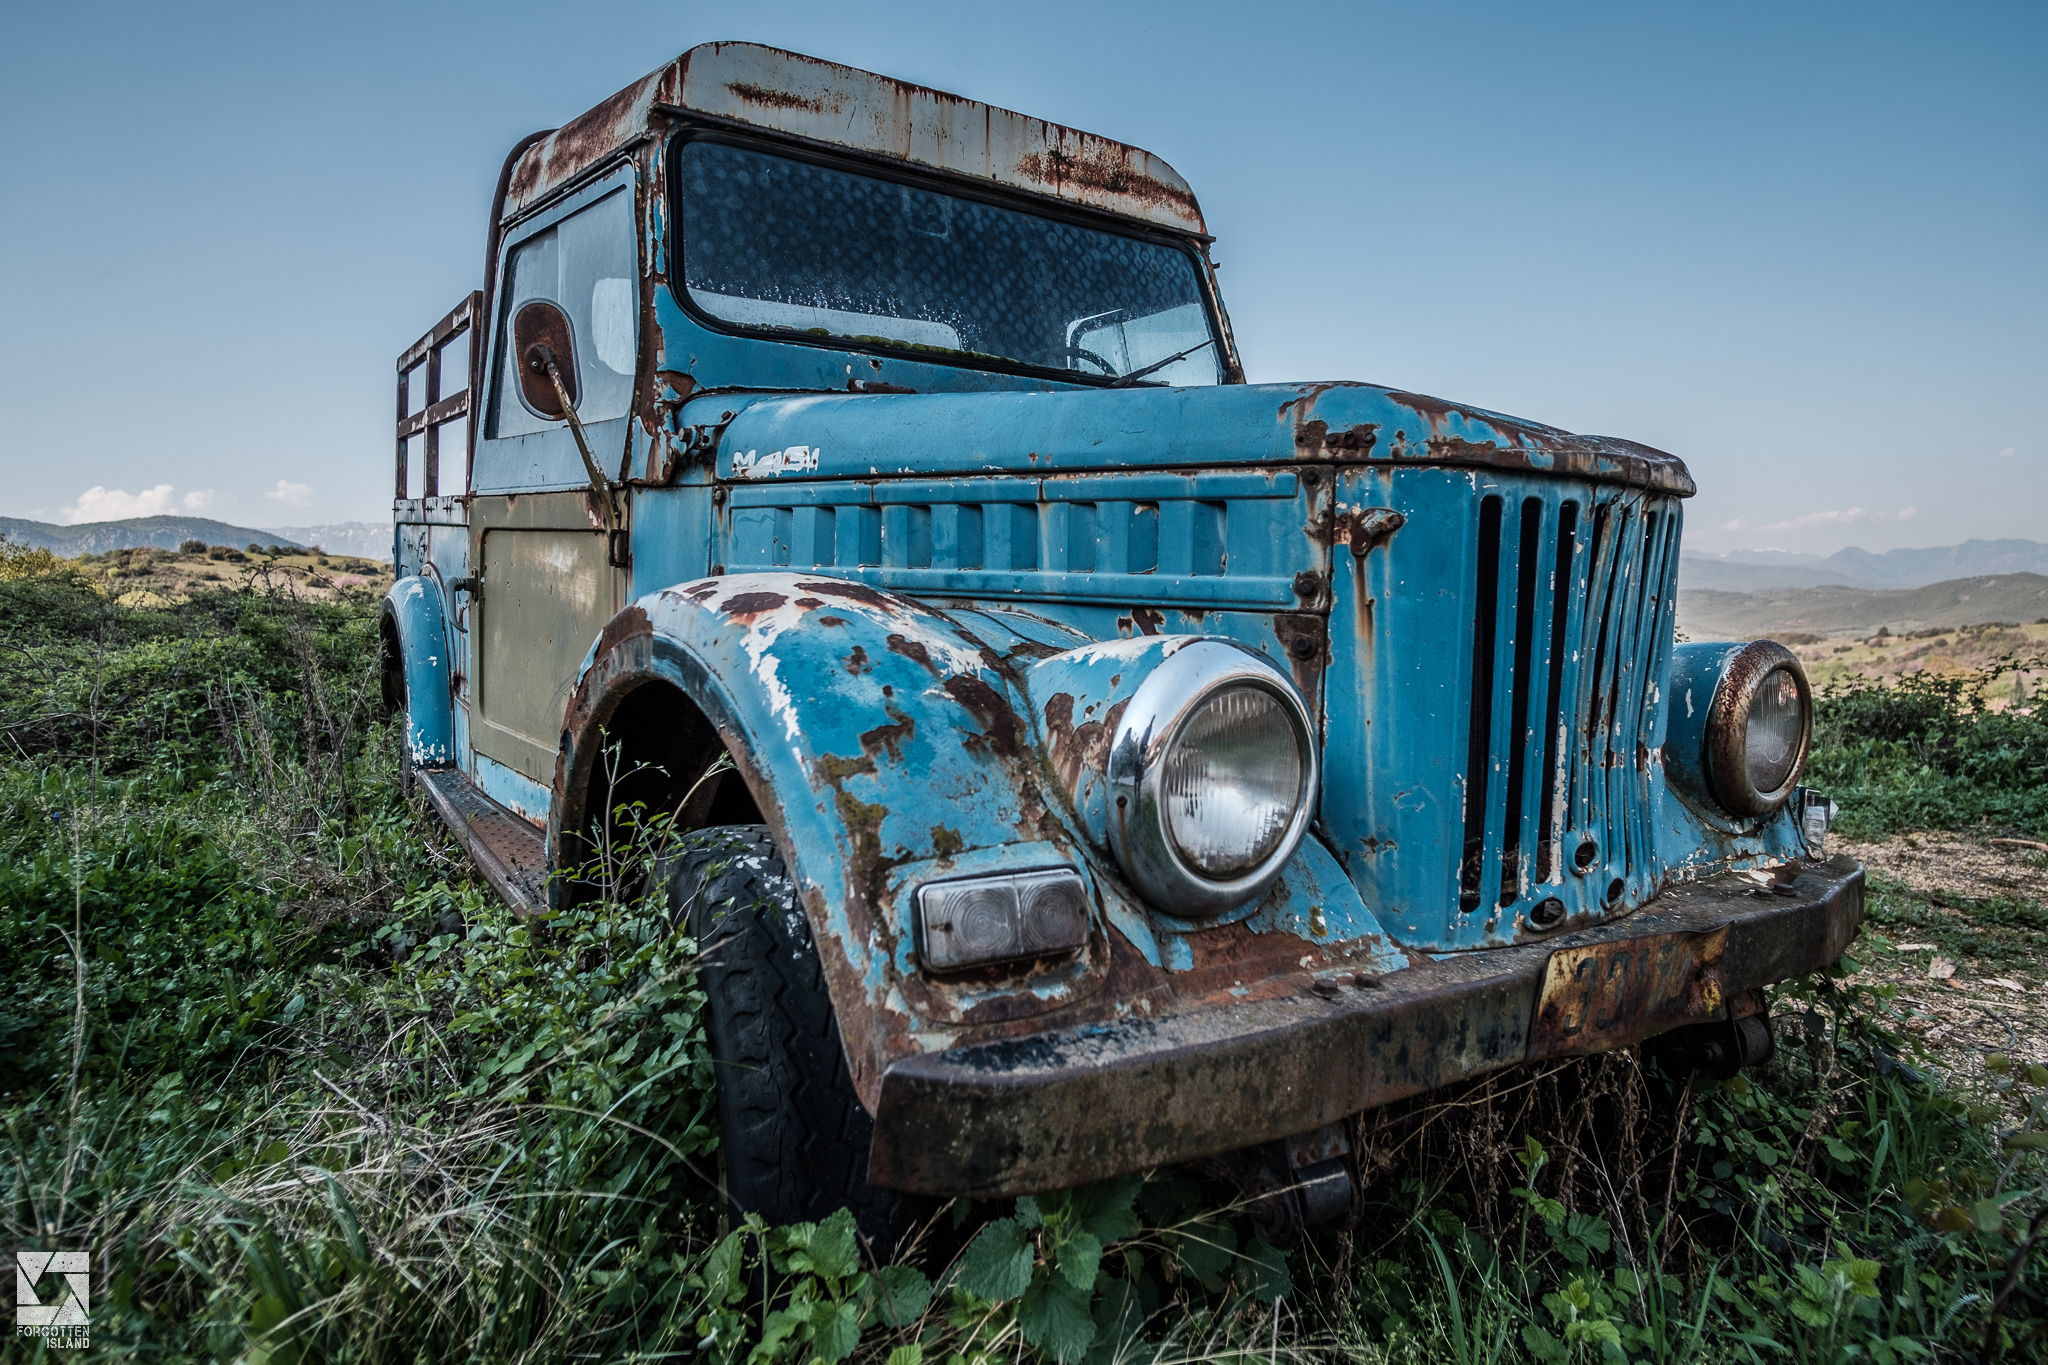 Greek Cars part 1 - Rust